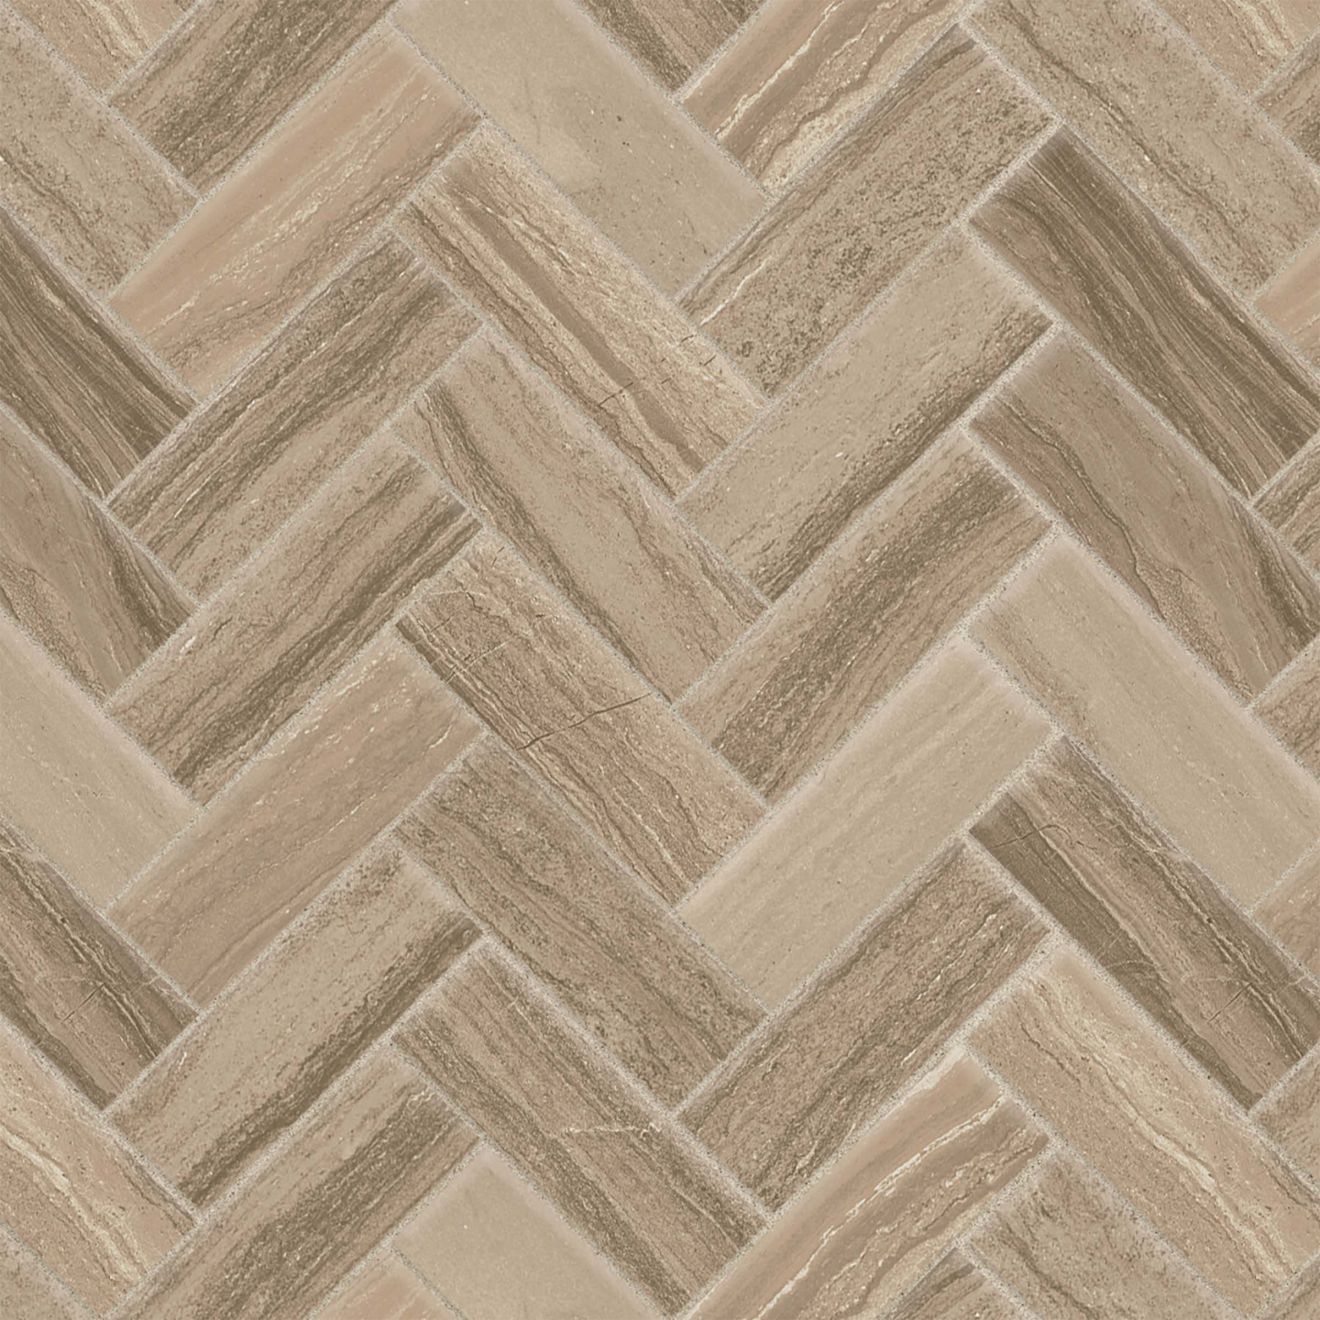 "Highland 1"" x 4"" Floor & Wall Mosaic in Beige"